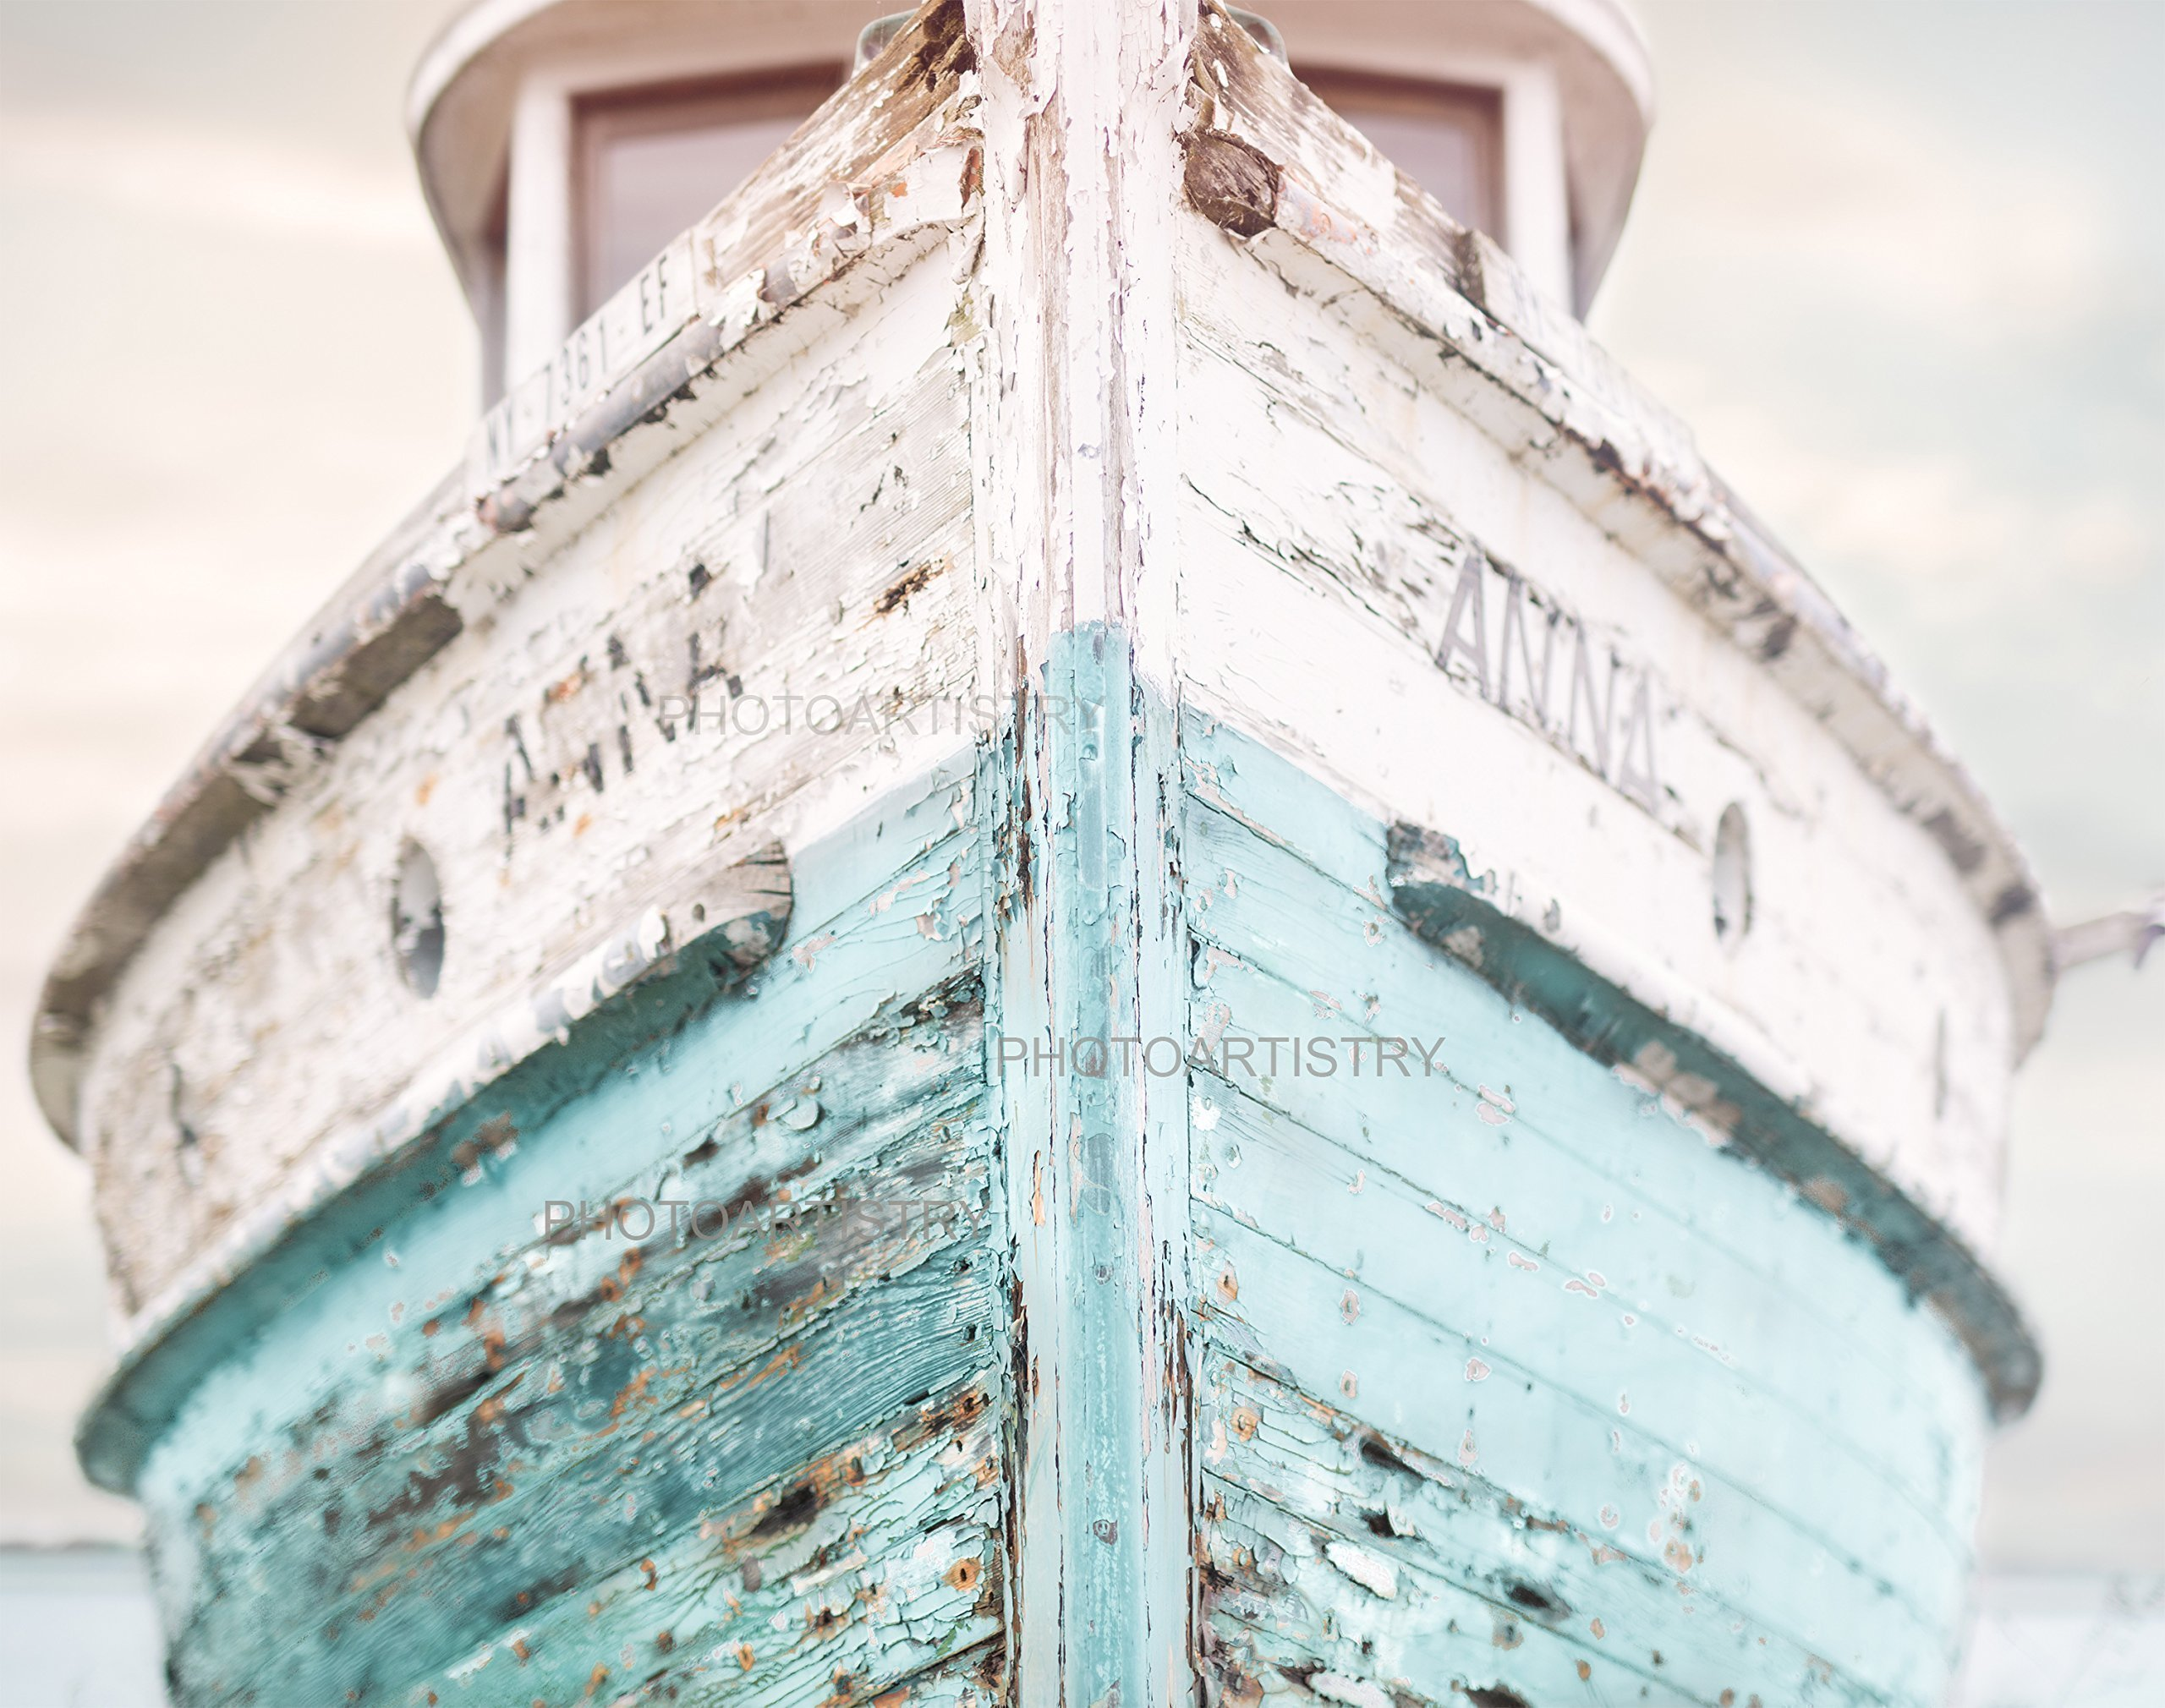 Nautical Ship 11x14 Fine Art Print, Nautical Decor - Aqua, Blue and White colors - vintage by Photo Artistry